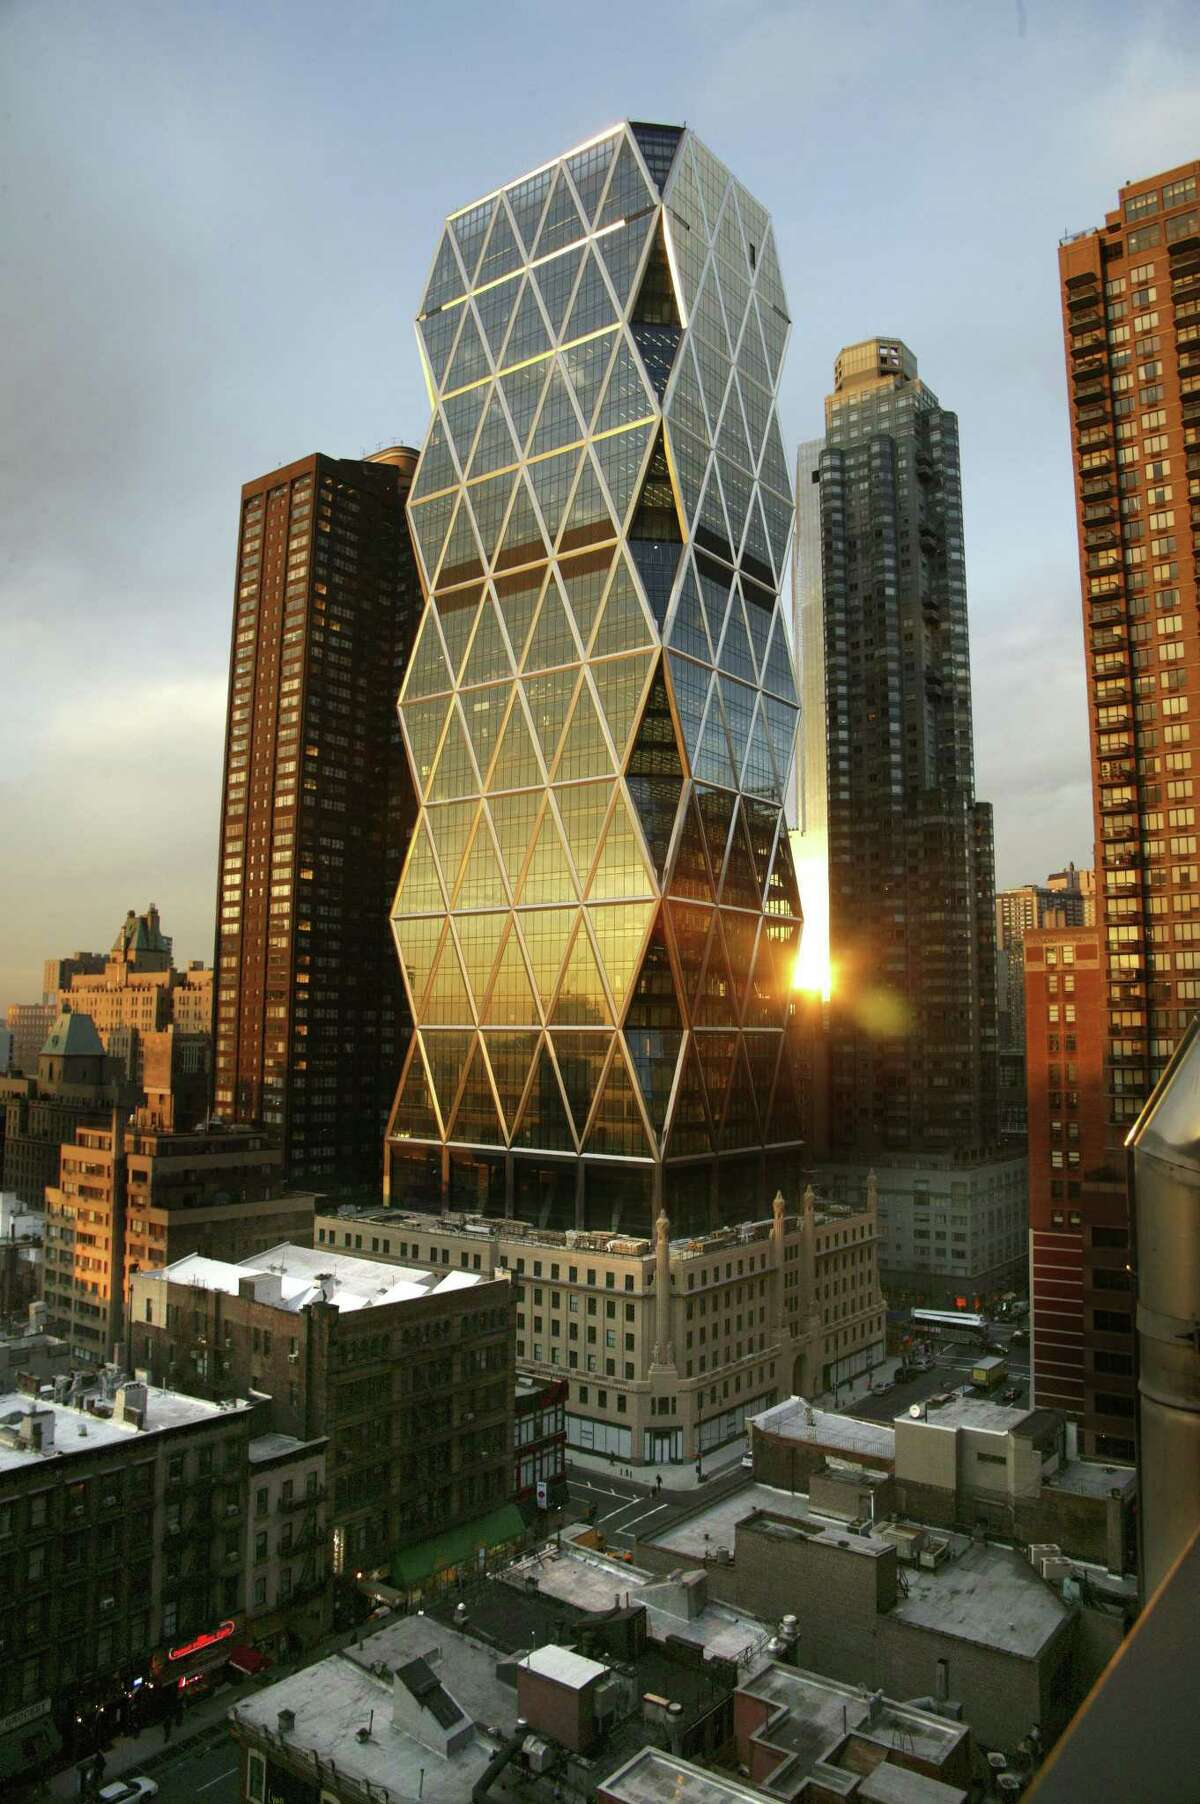 The Hearst Tower in New York City is a successful example of the merging of old and new commercial structures.